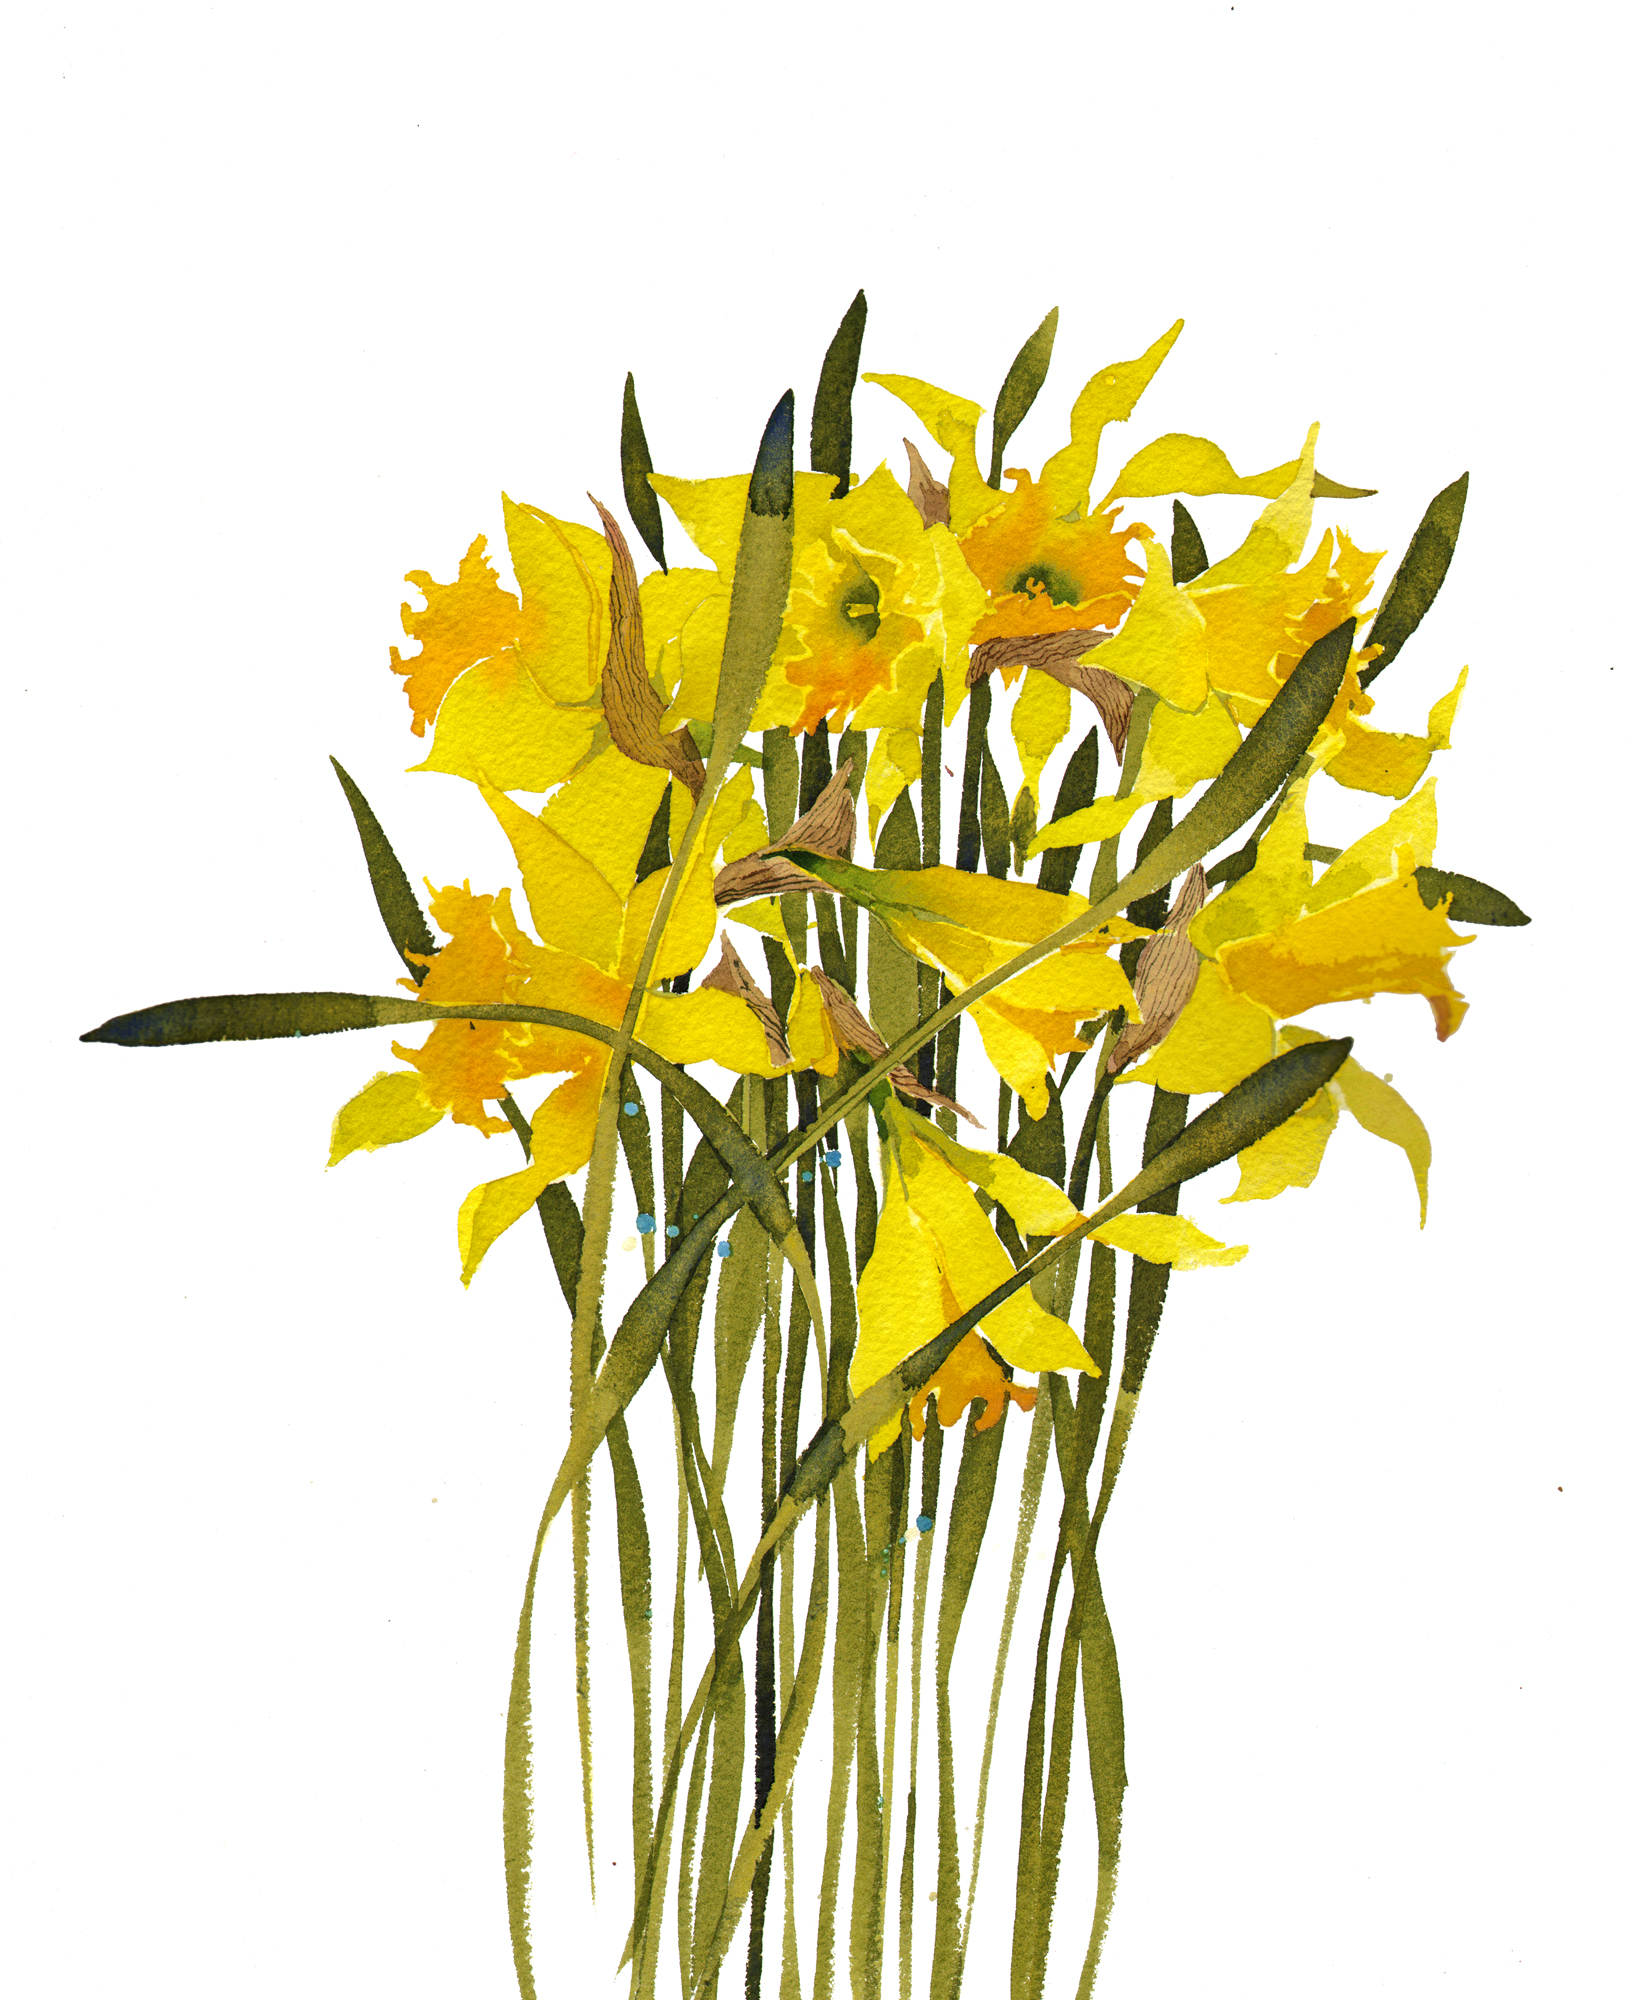 Daffodils I, New sold image